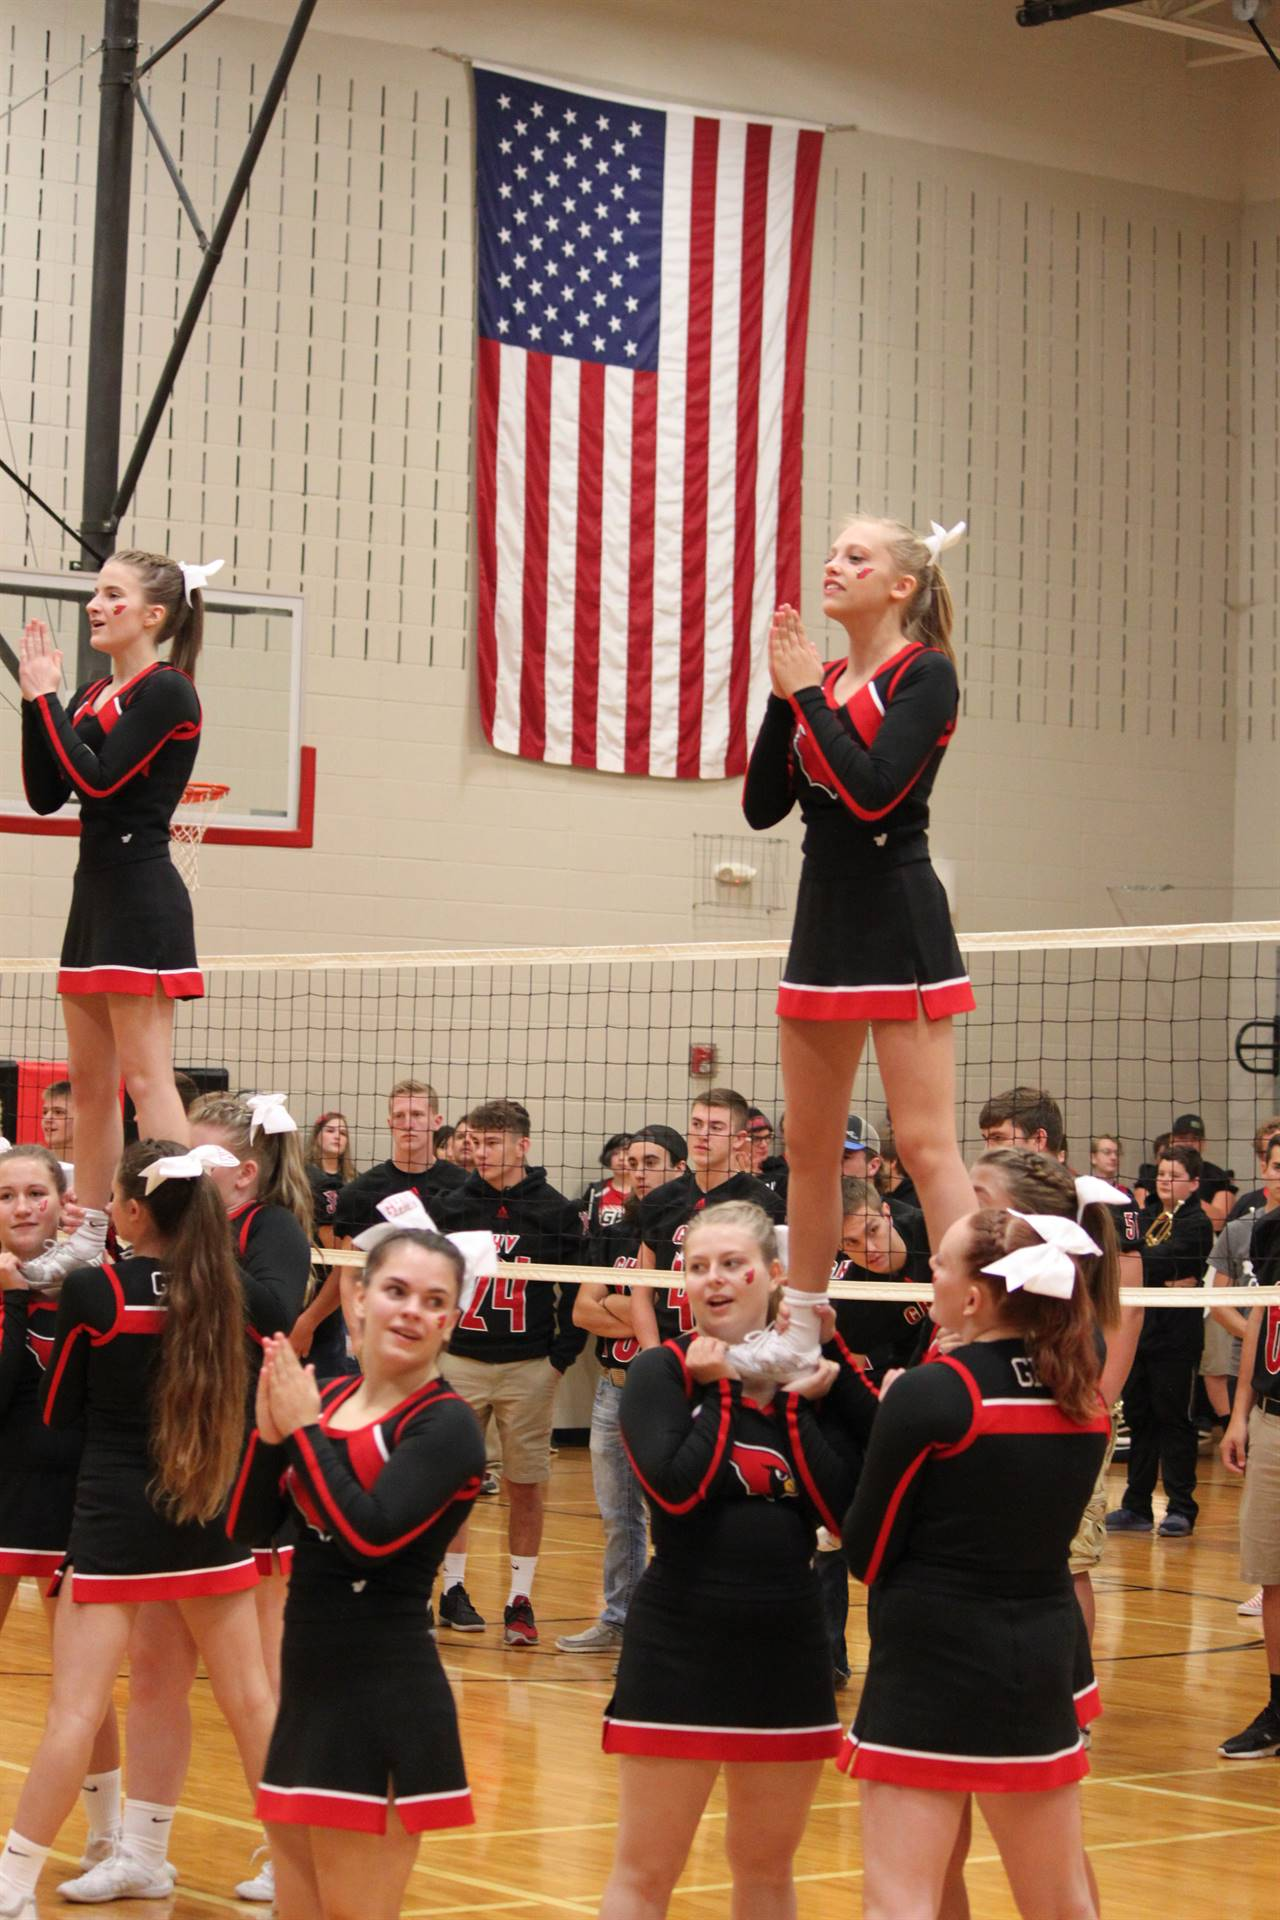 high school cheerleaders cheering at elementary pep rally